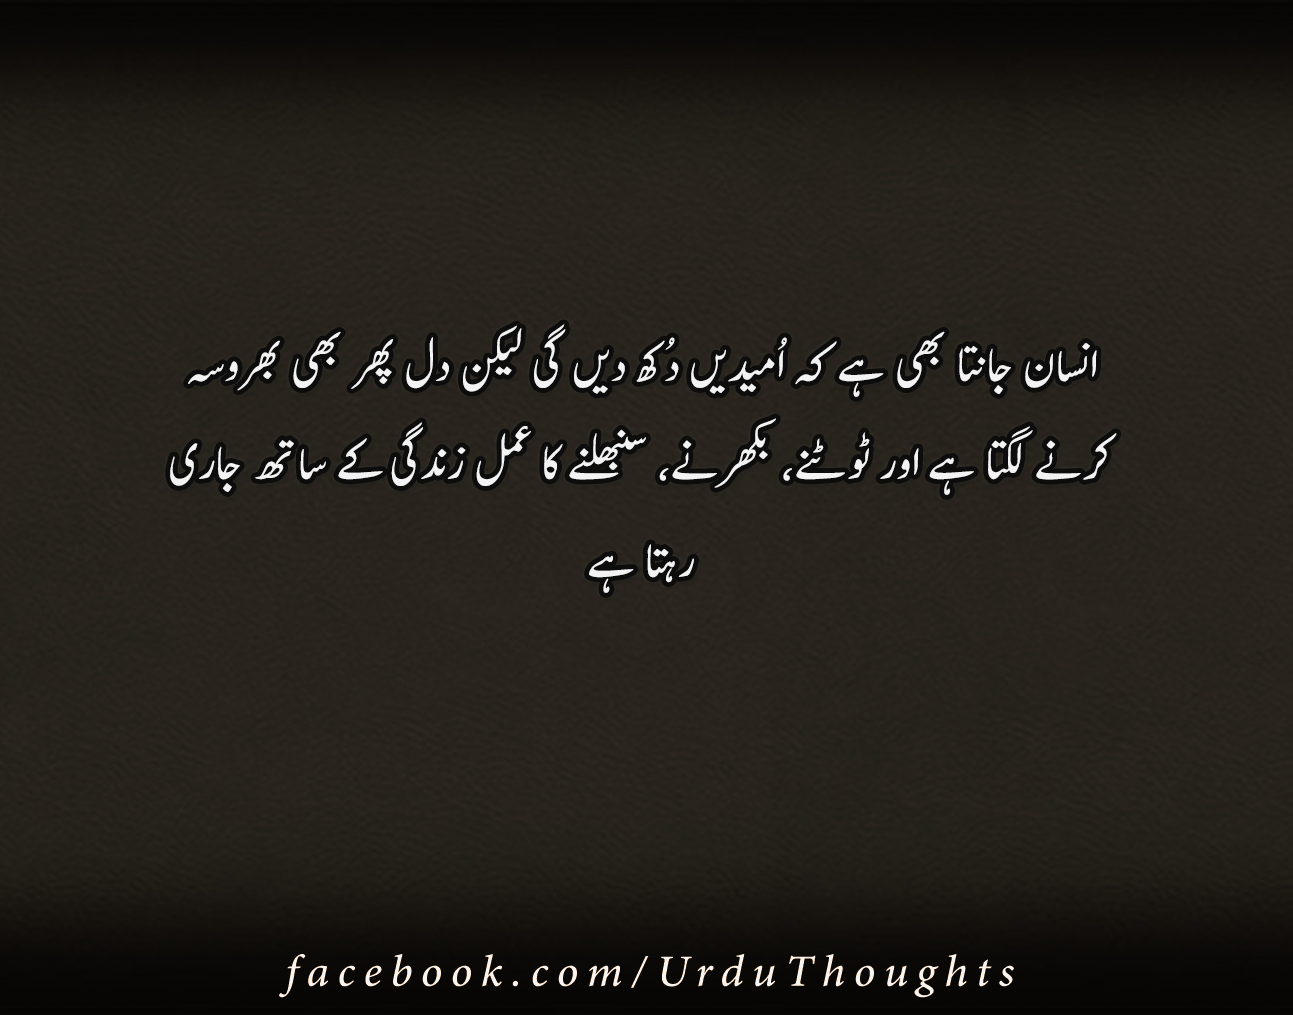 17 urdu quotes about time people life zindagi urdu thoughts